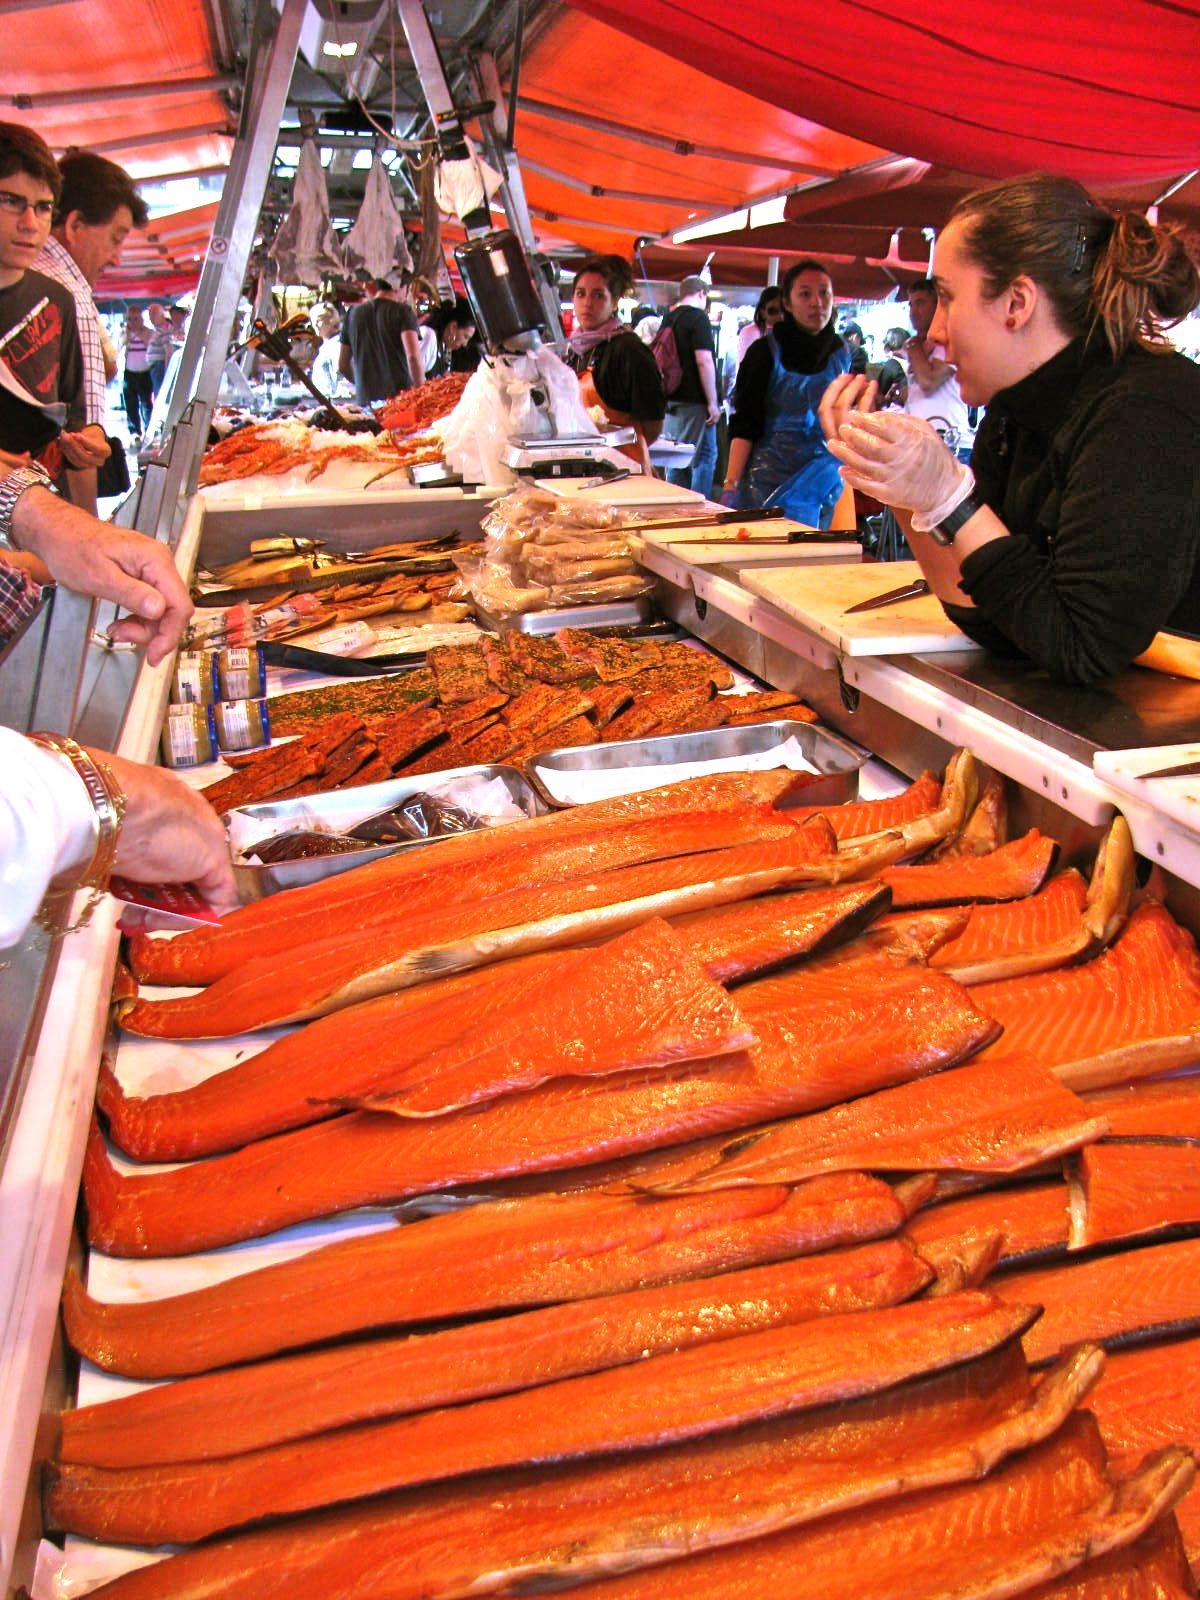 Salmon Anyone The Fish Market In Bergen Norway Norway Food Street Food Market Norwegian Food